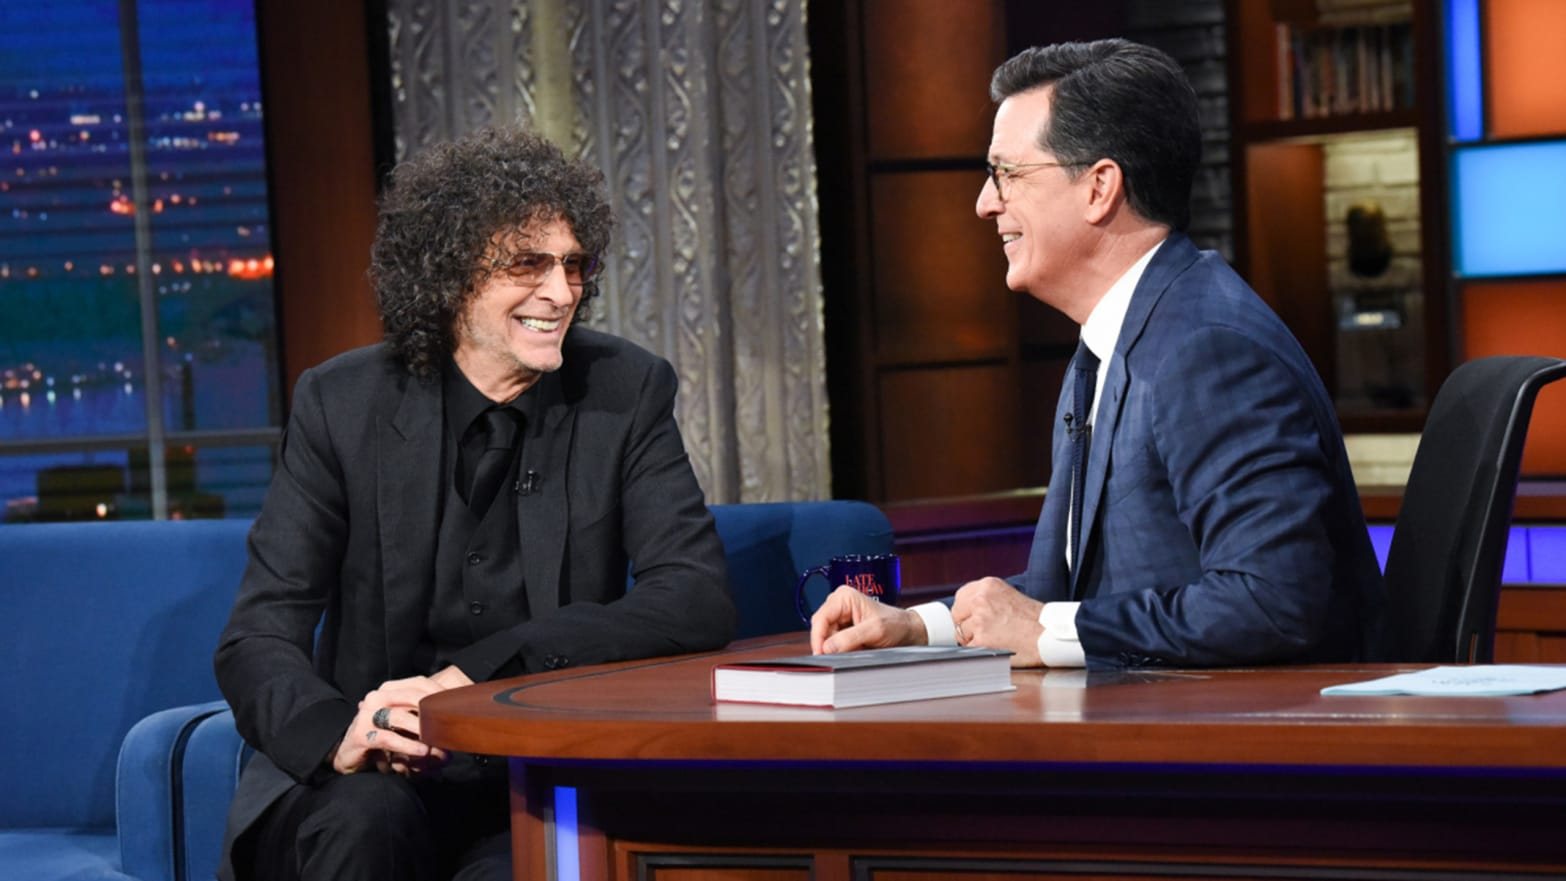 Howard Stern Dishes to Colbert on Trump's Attraction to His Daughter Ivanka: 'He Was Wild'